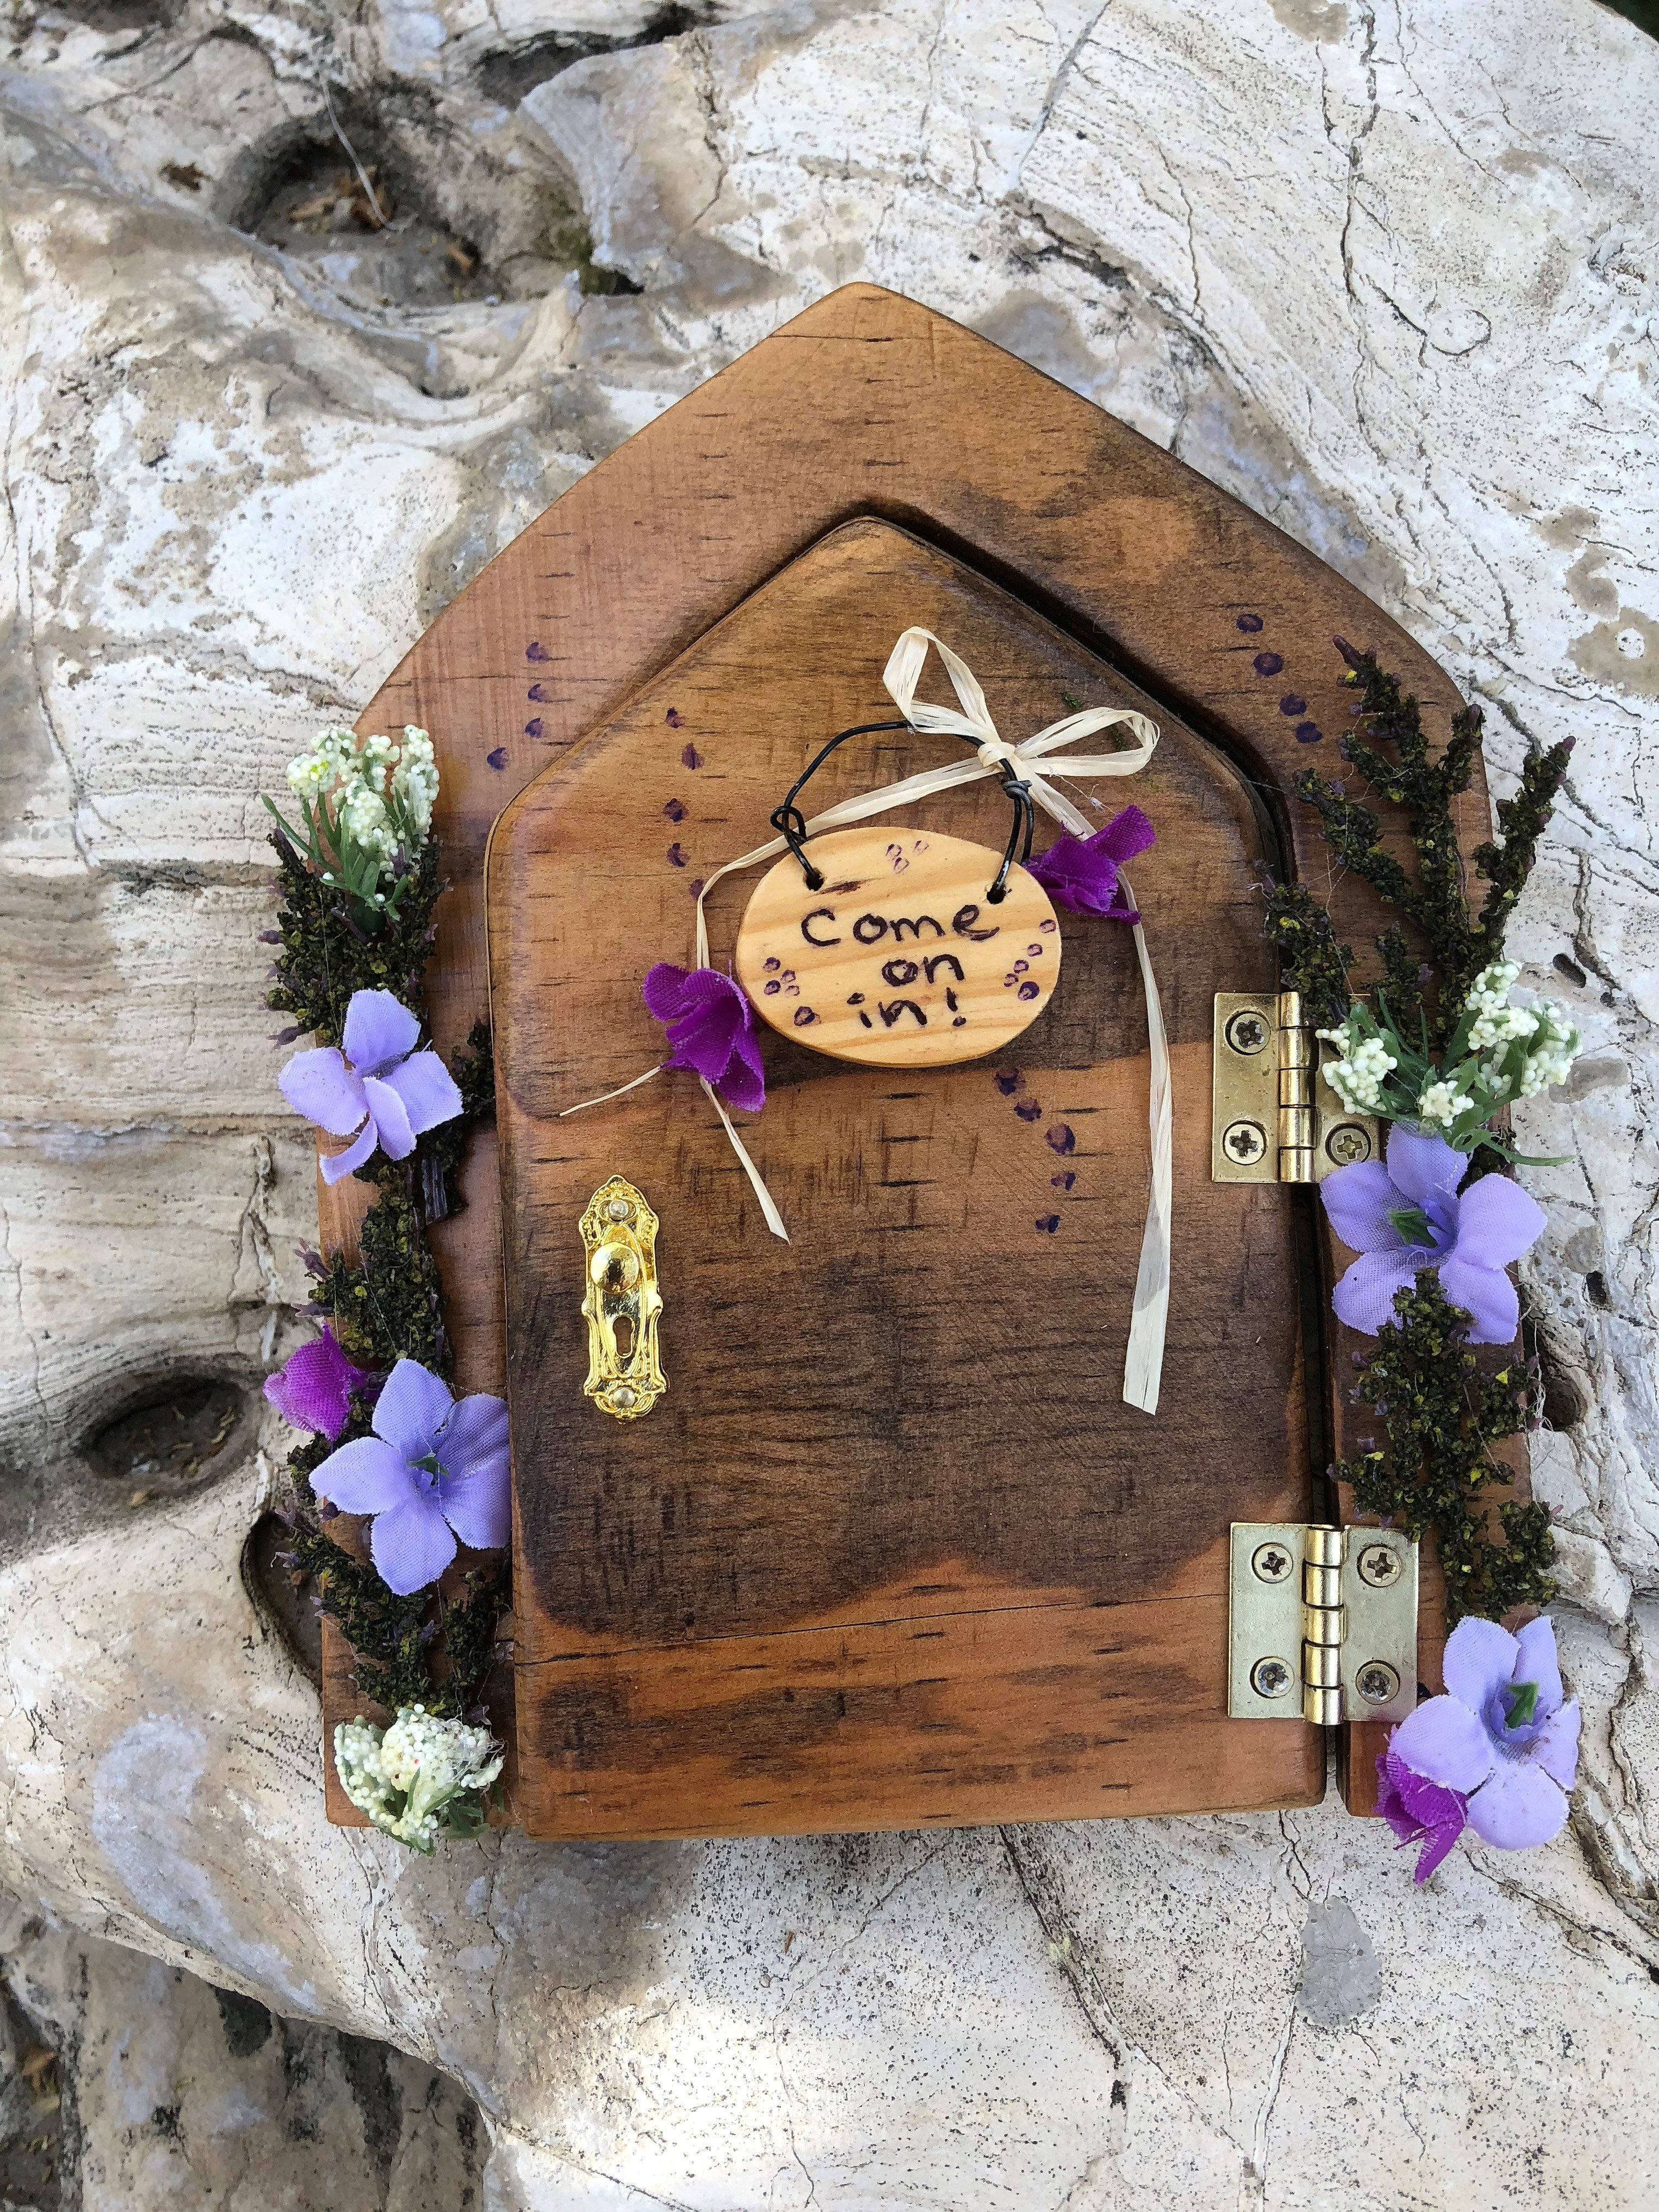 Sprouted Dreams Fairy Doors